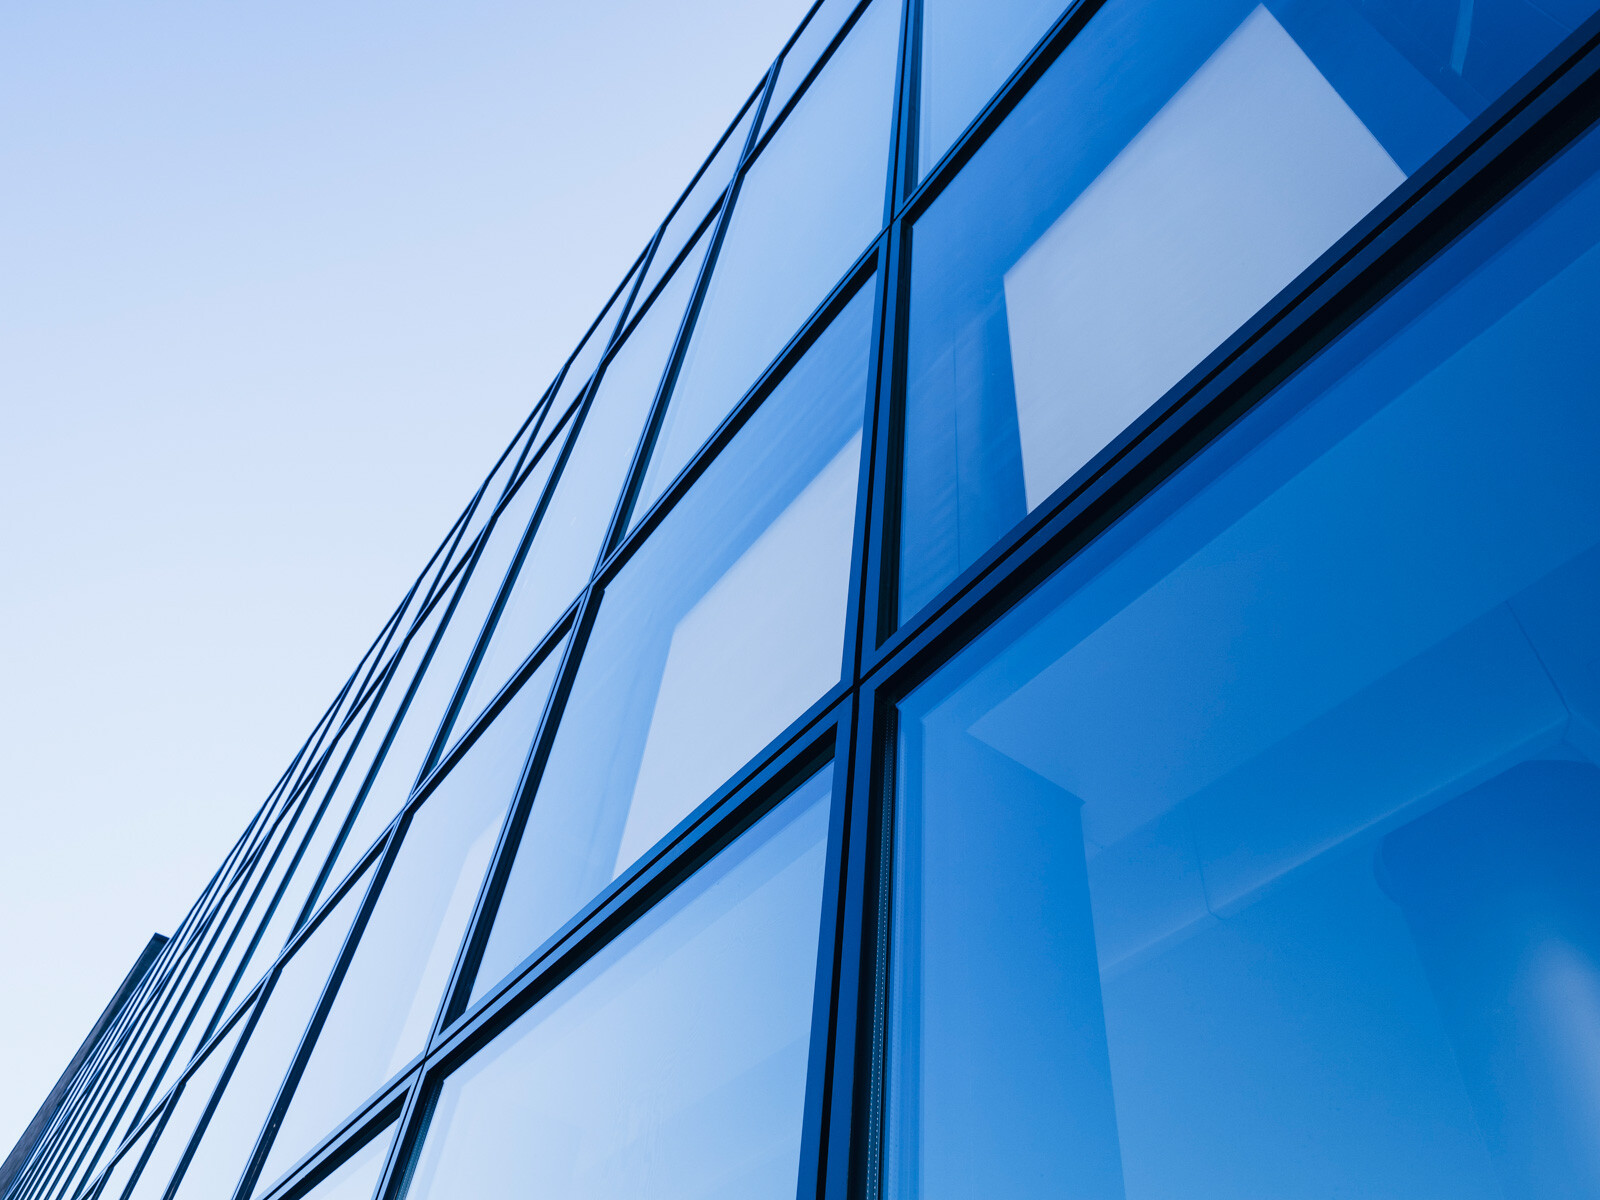 Building_Windows_Building_iStock_82806629.jpg